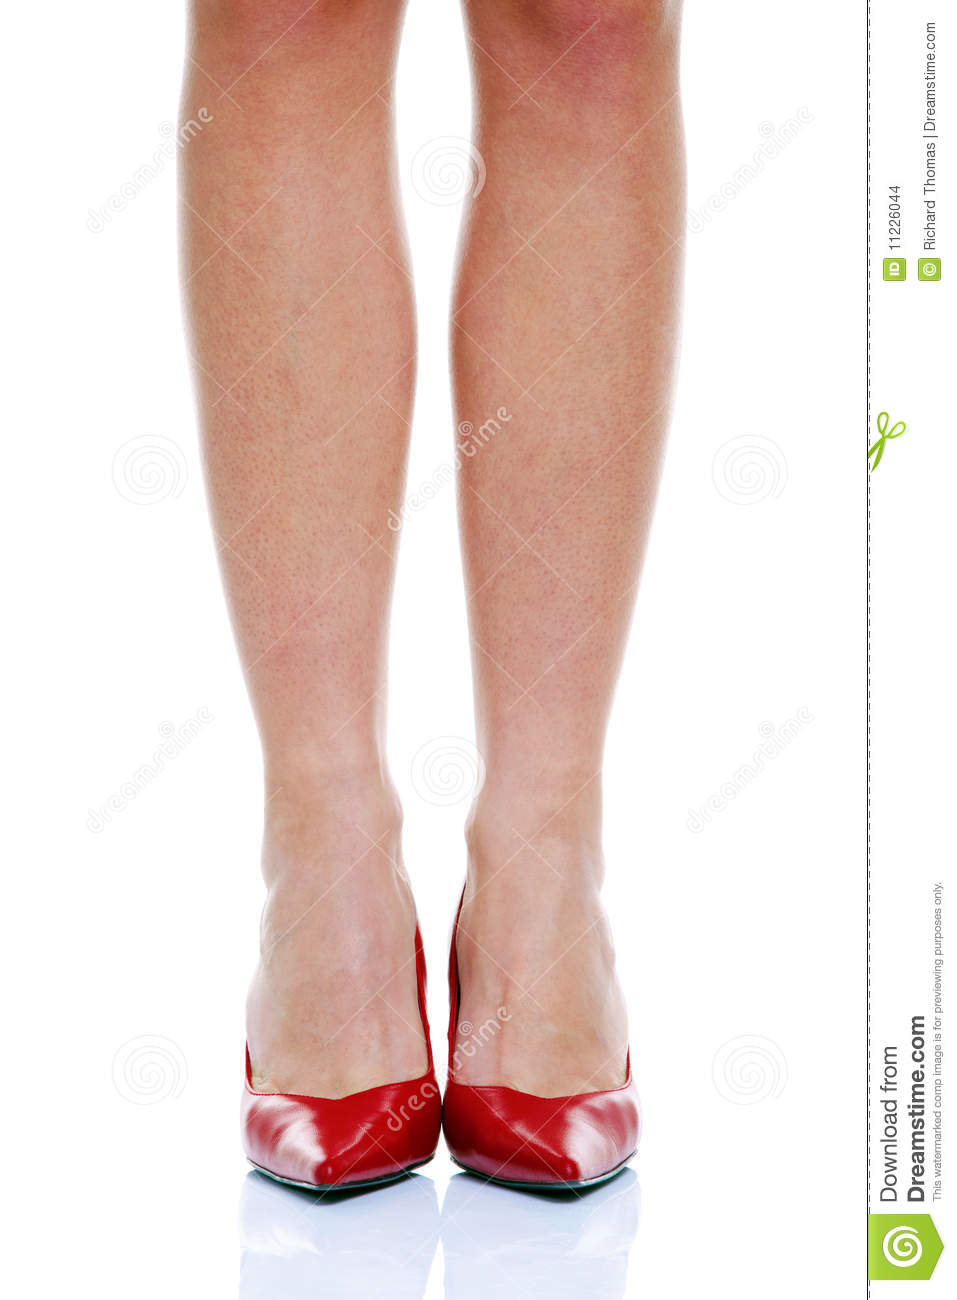 Nice Heels Shoes Pictures